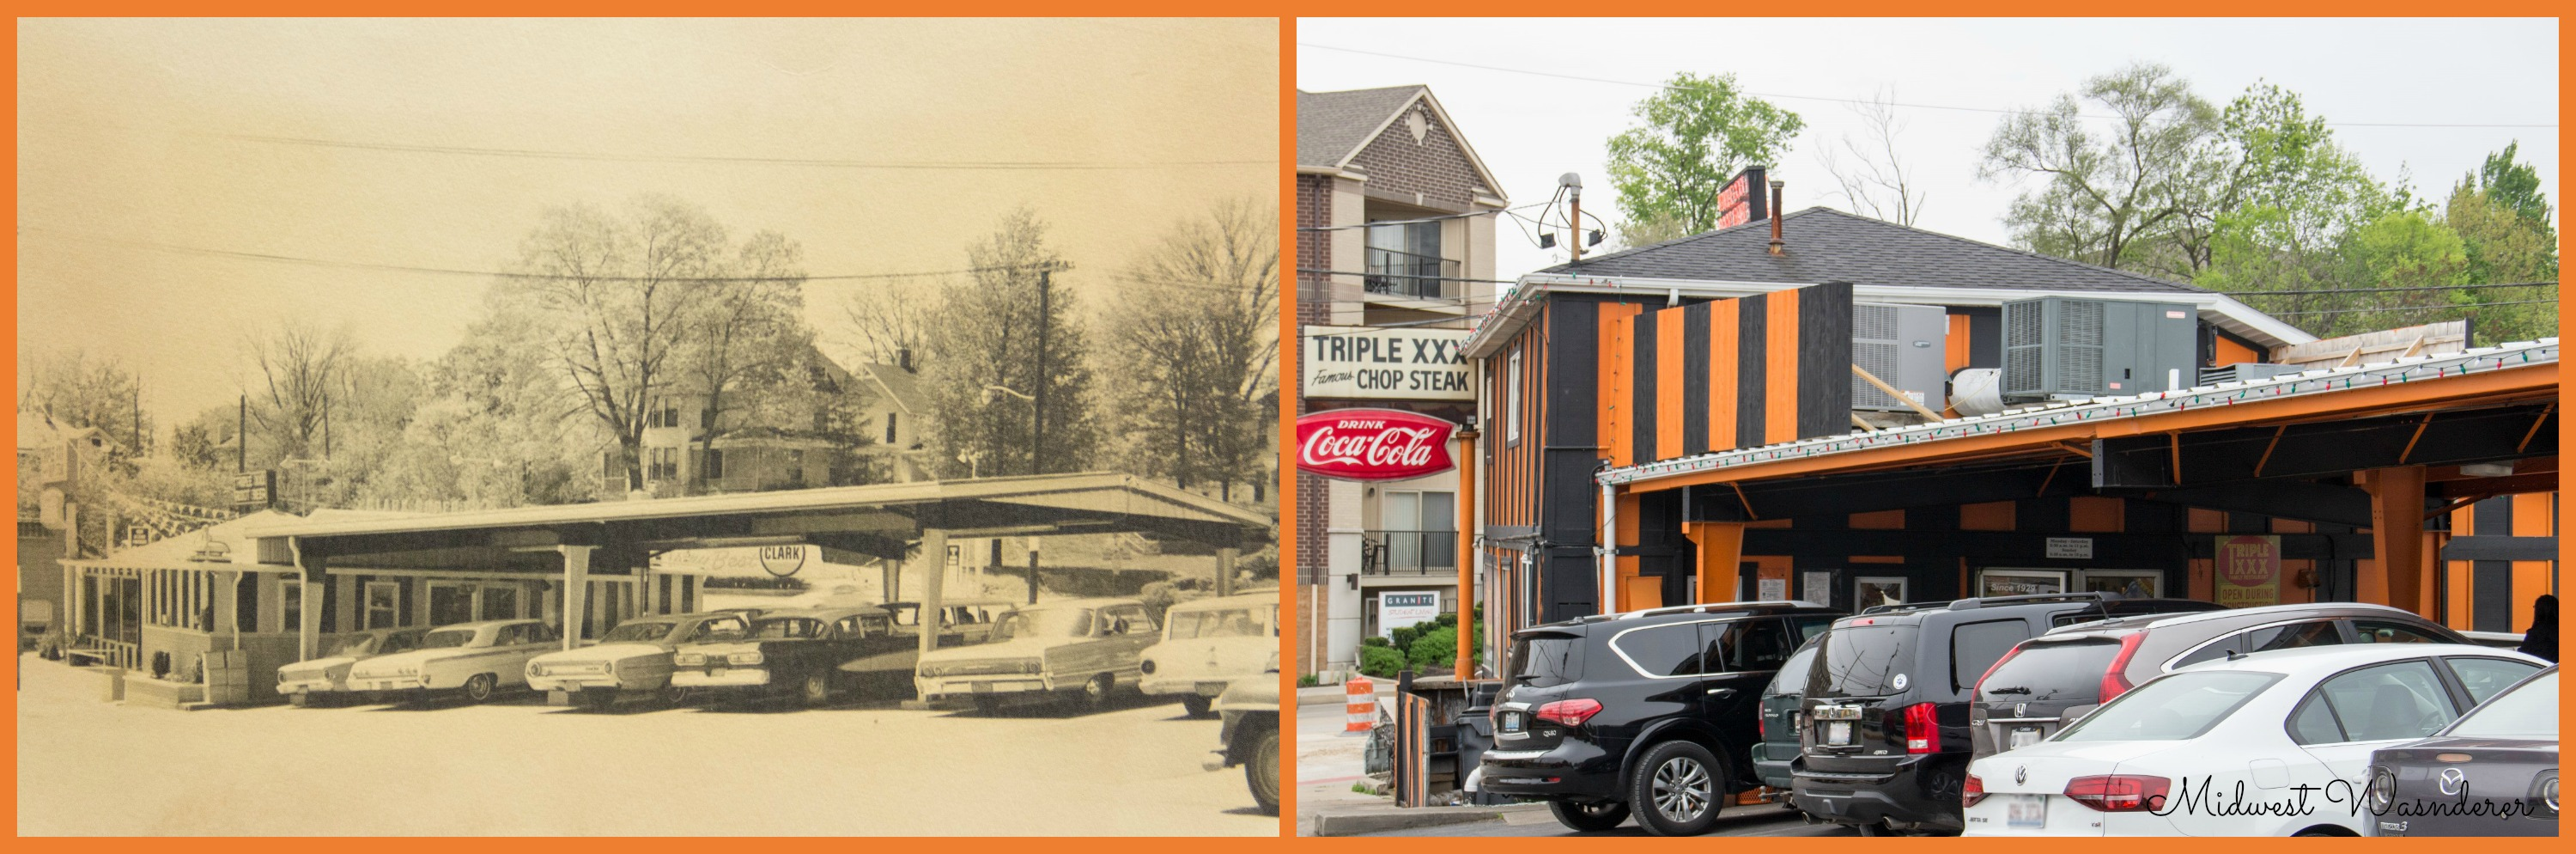 Triple XXX Family Restaurant then and now